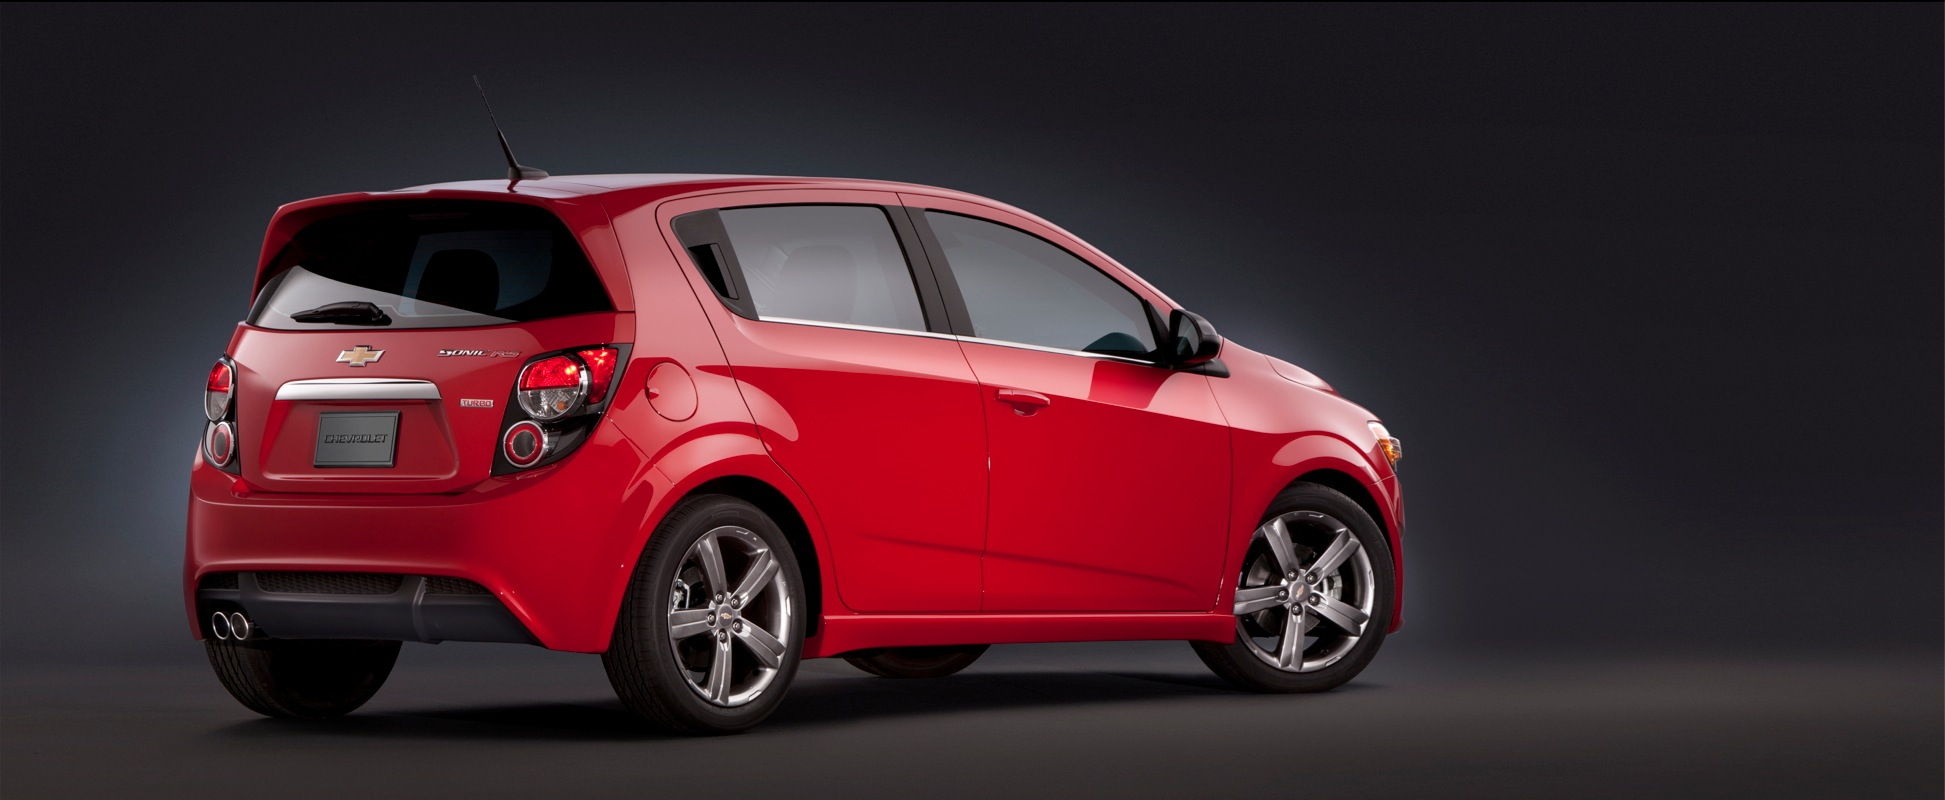 CHEVROLET Sonic RS specs & photos - 2012, 2013, 2014, 2015 ...